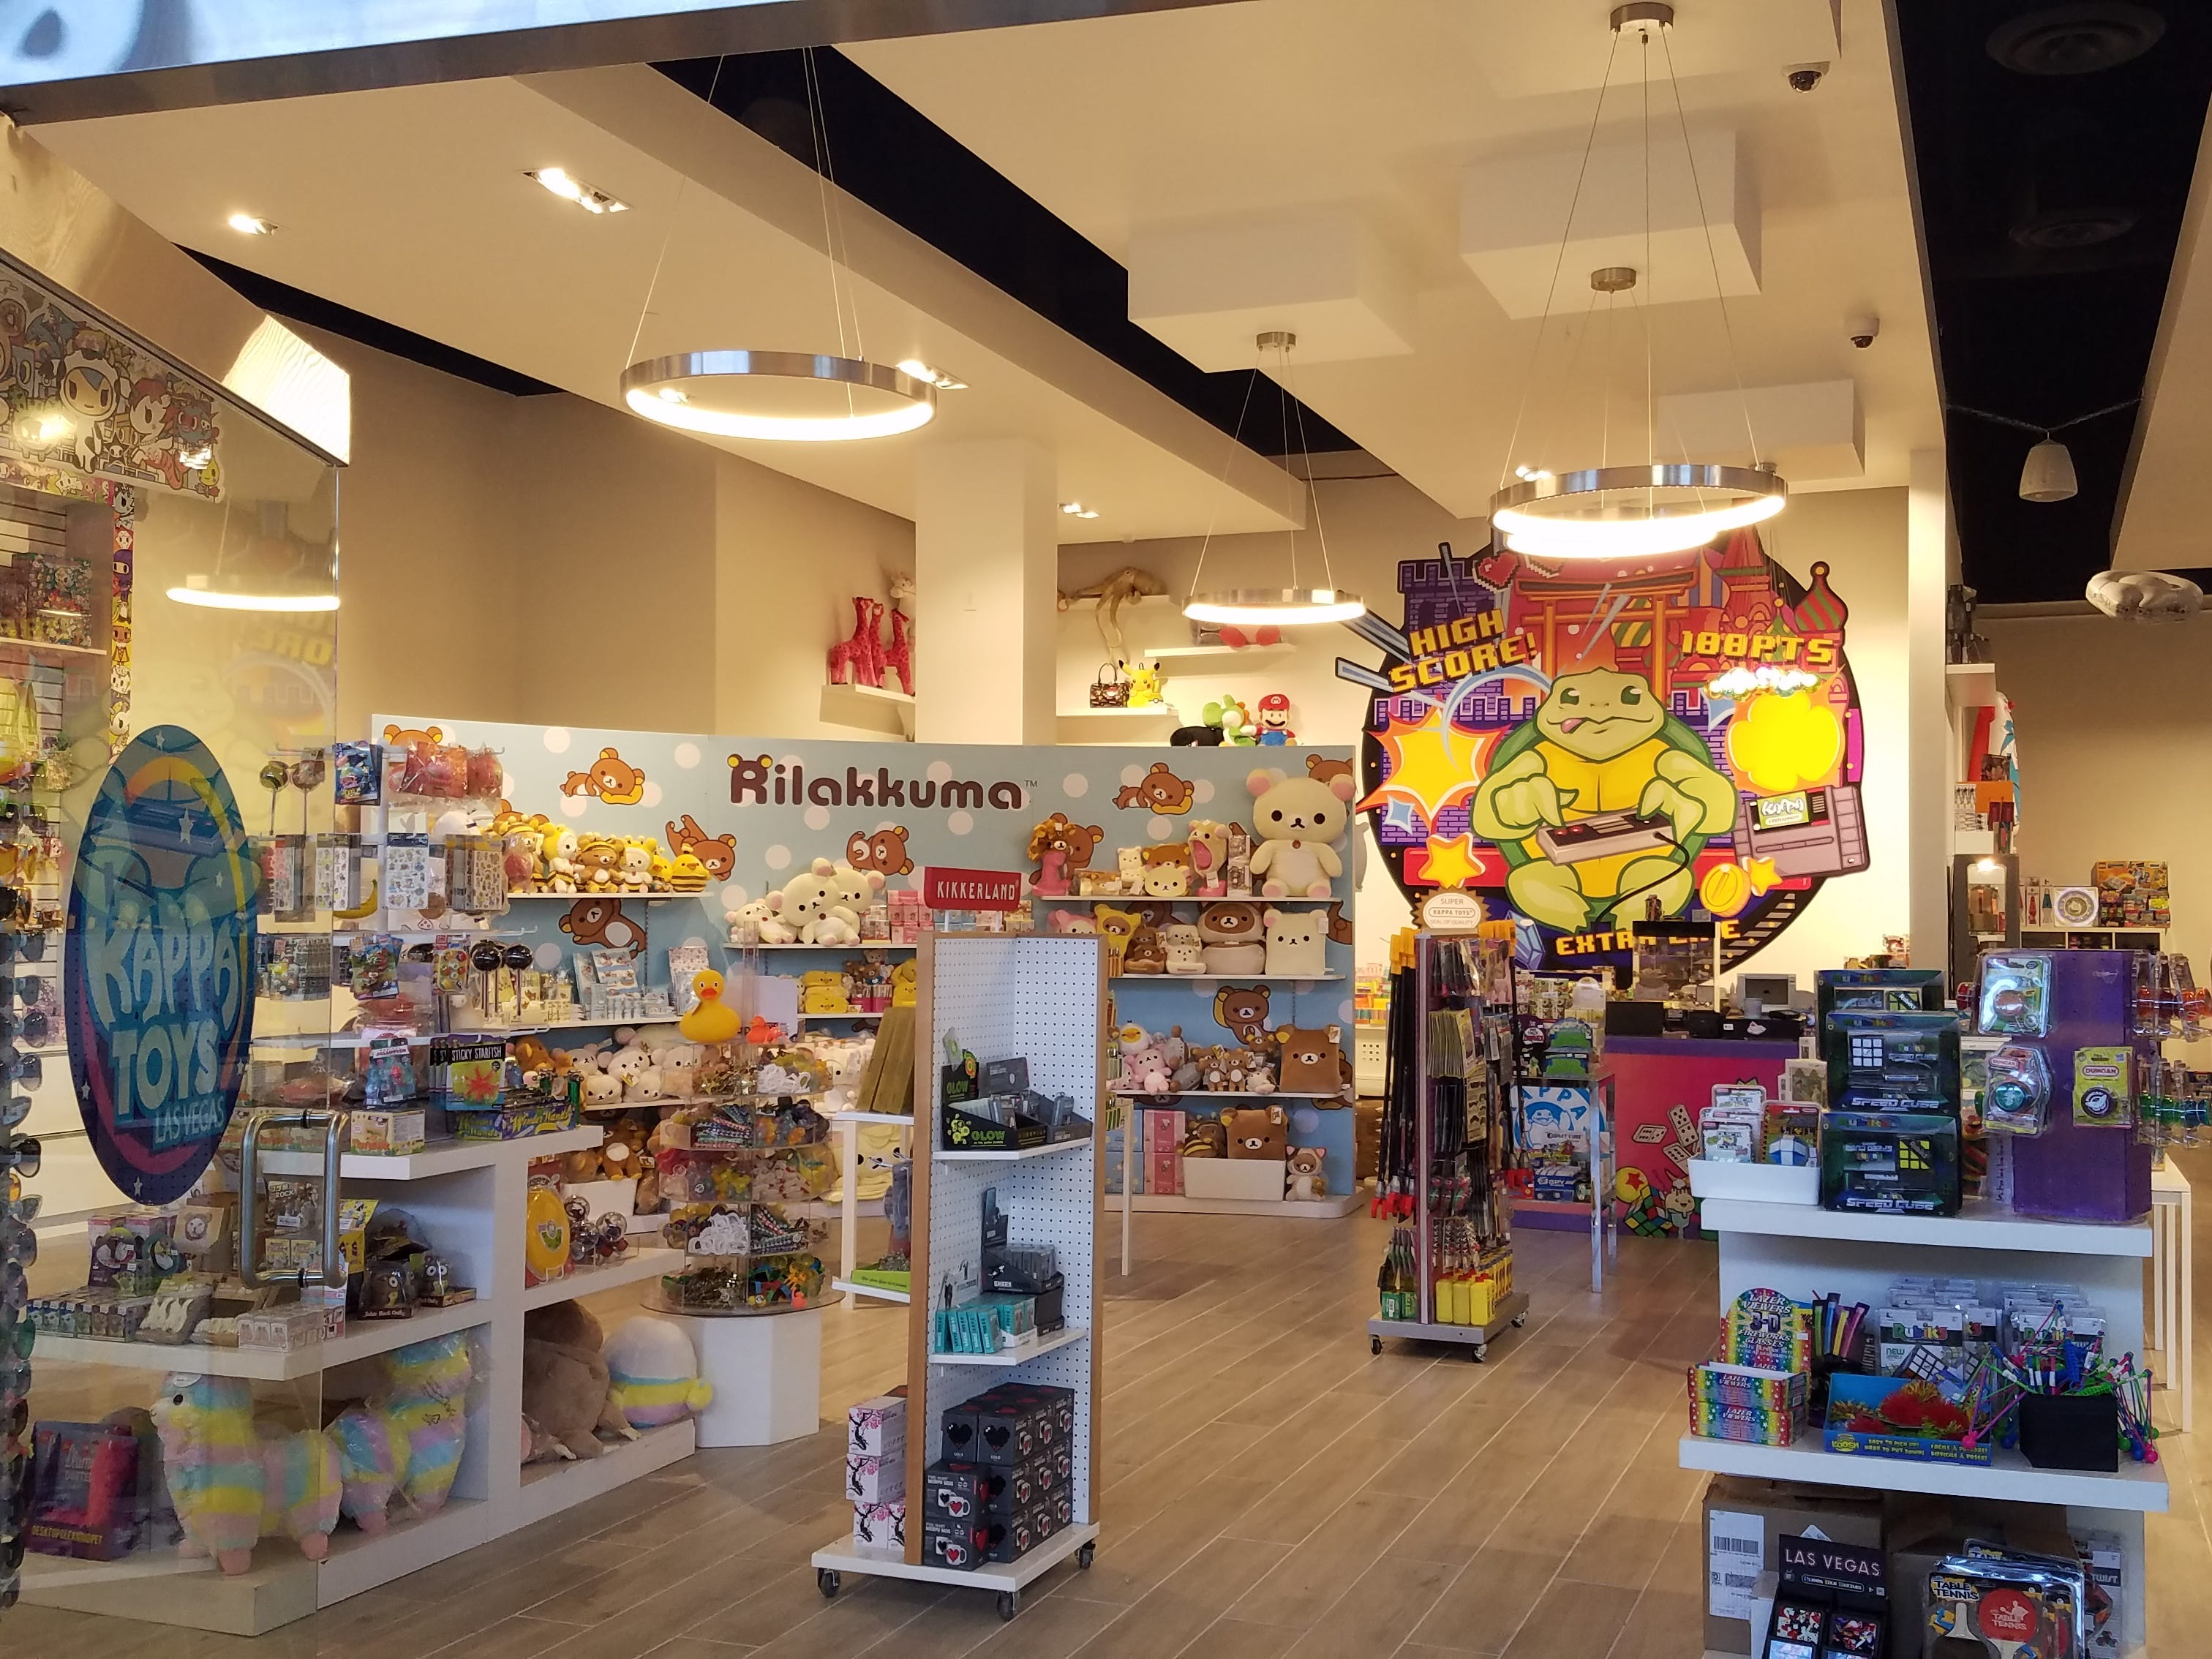 Kappa Toys in Las Vegas appeals to toddlers, grade schoolers, teens and even their parents. The chain's newest location is in the city's glitzy Fashion Show mall.